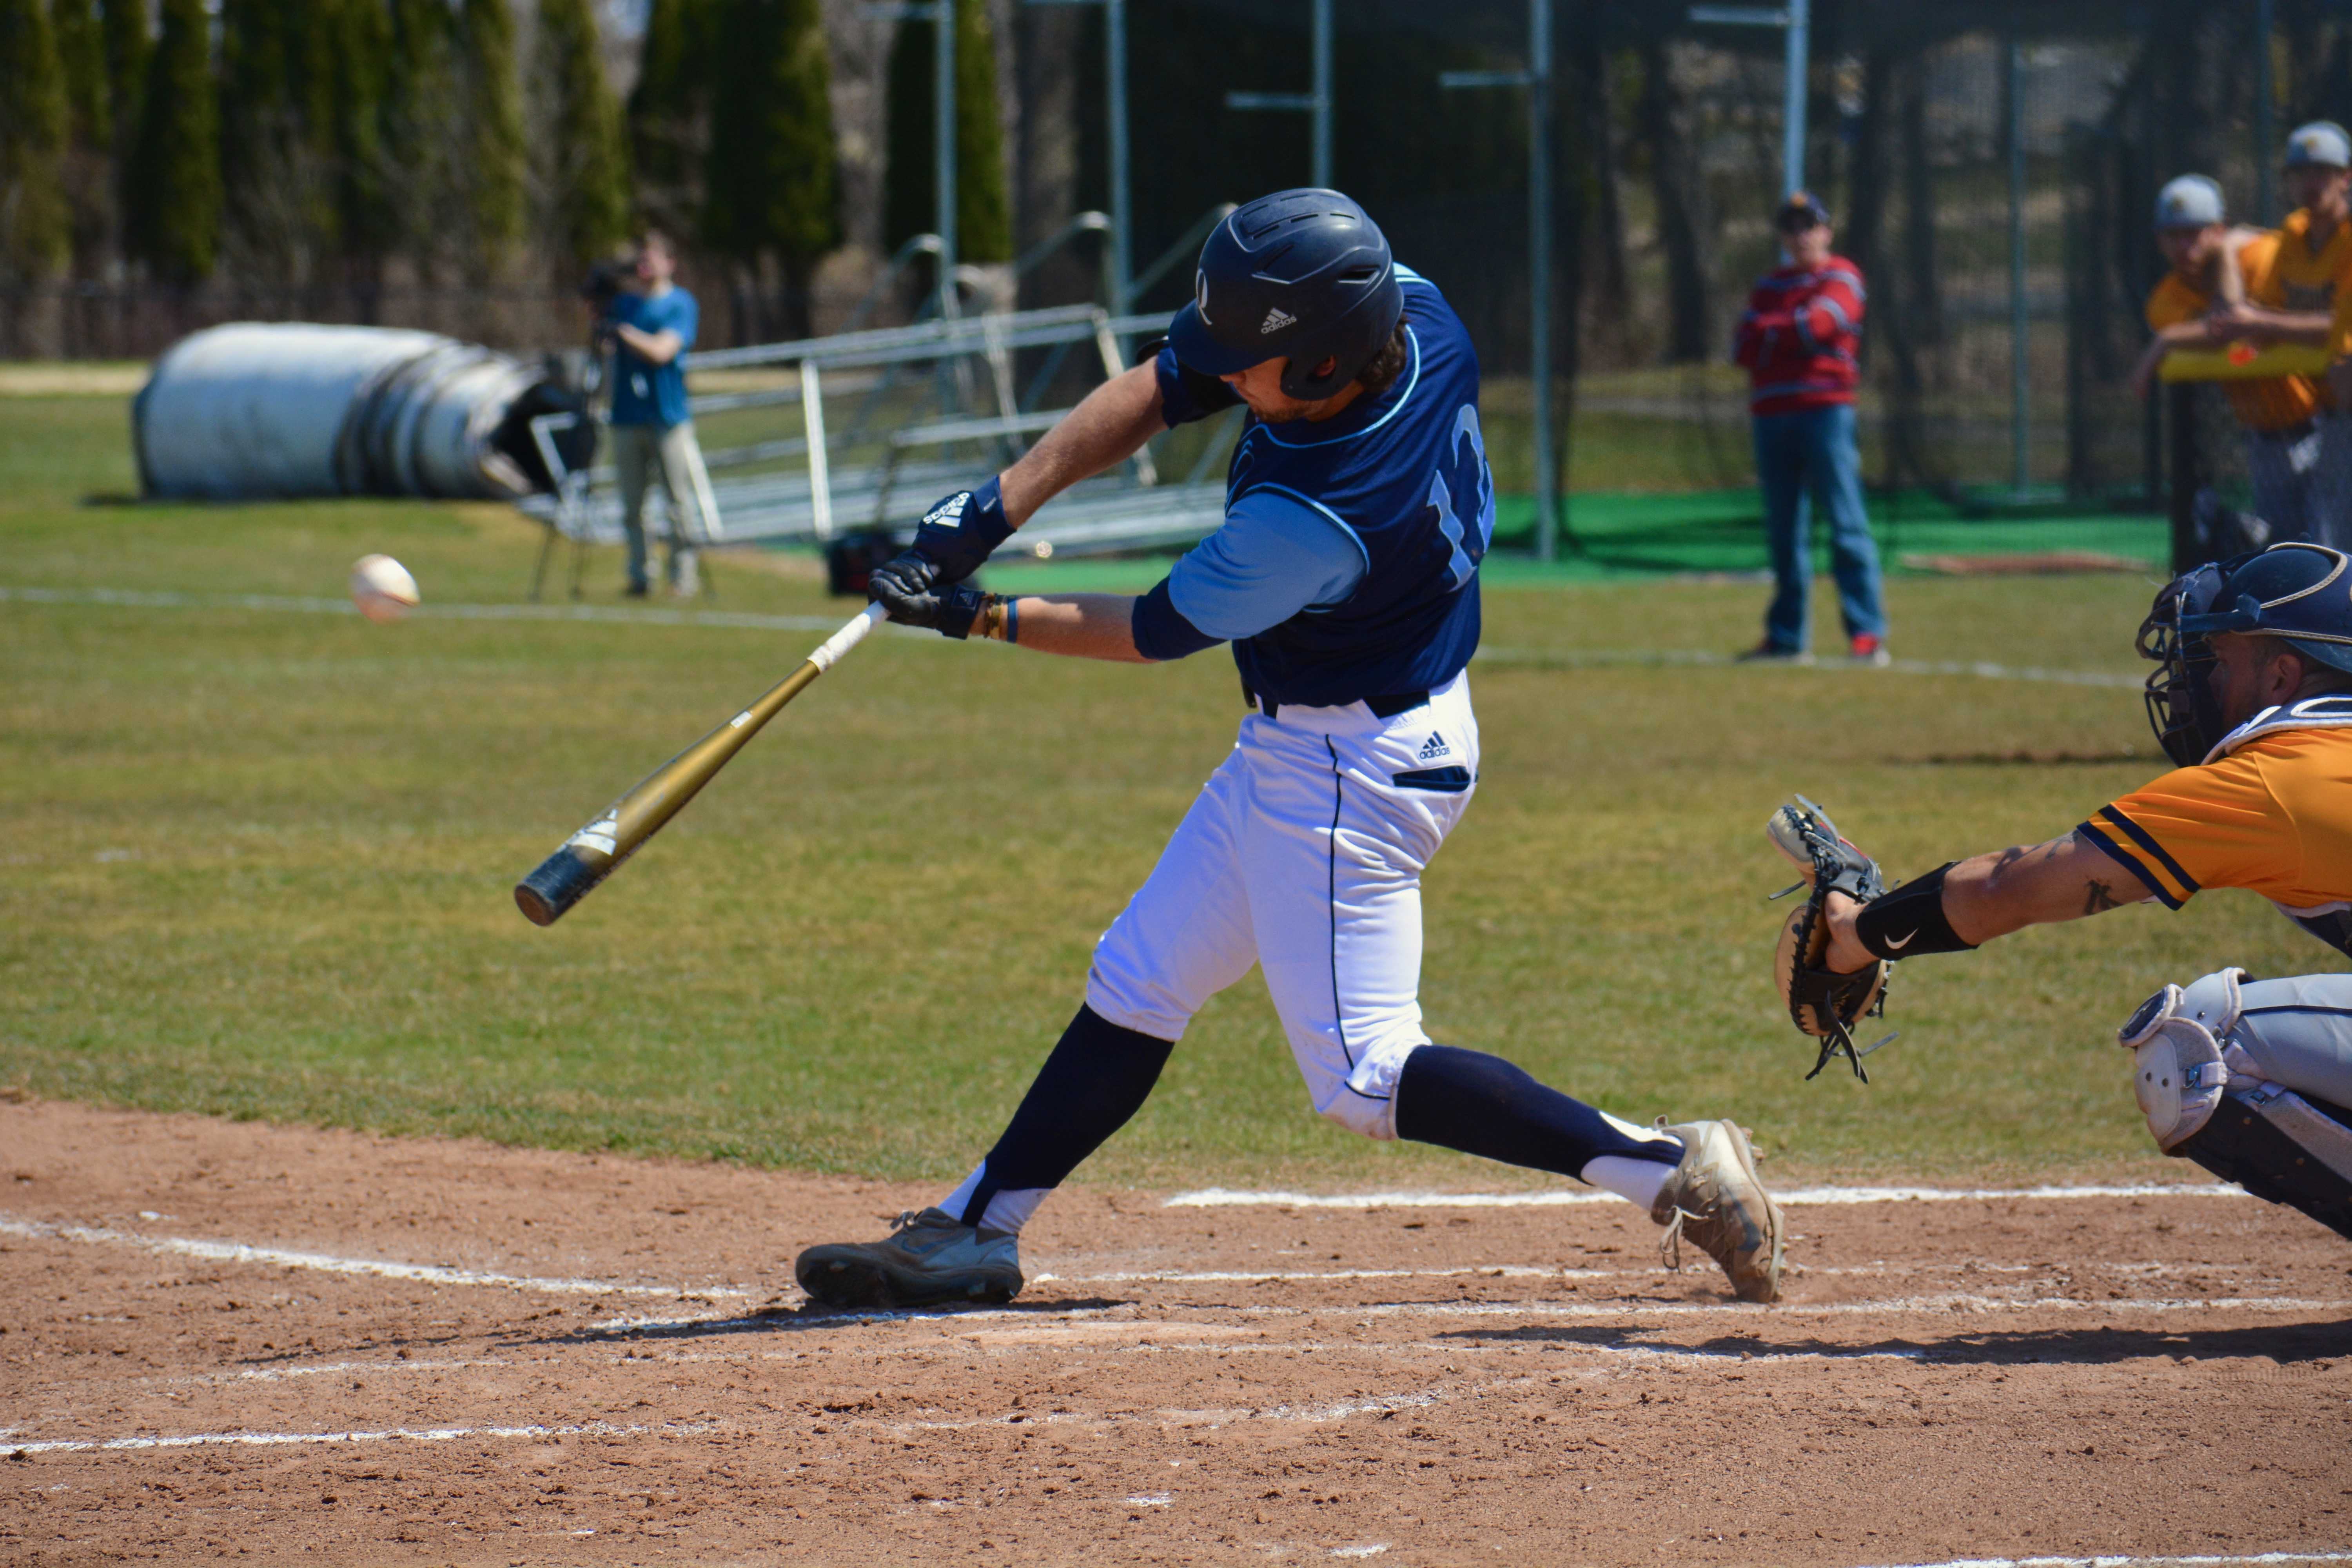 Quinnipiac baseball scores double-digit runs in second straight game in win over Yale